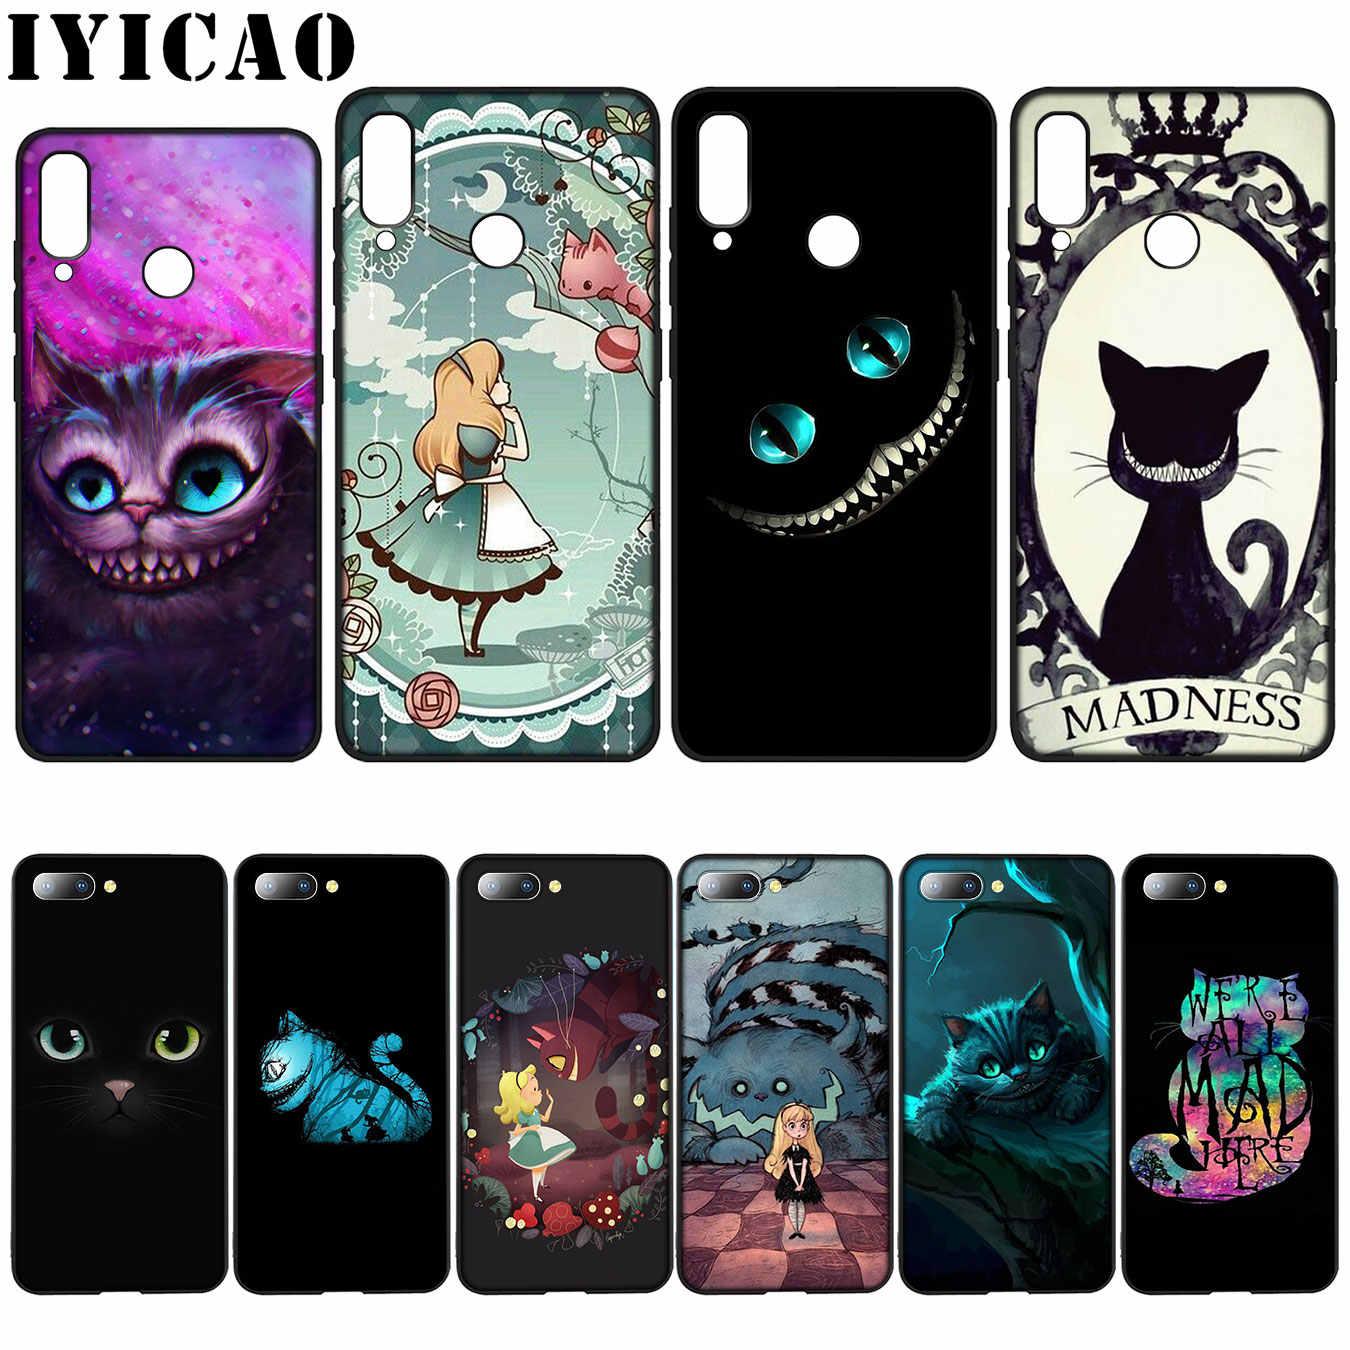 IYICAO Cheshire Cat Silicone Soft Case for Huawei Y7 Y6 Prime Y9 2018 Honor 8C 8X 8 9 10 Lite 6A 7C 7X 7A Pro